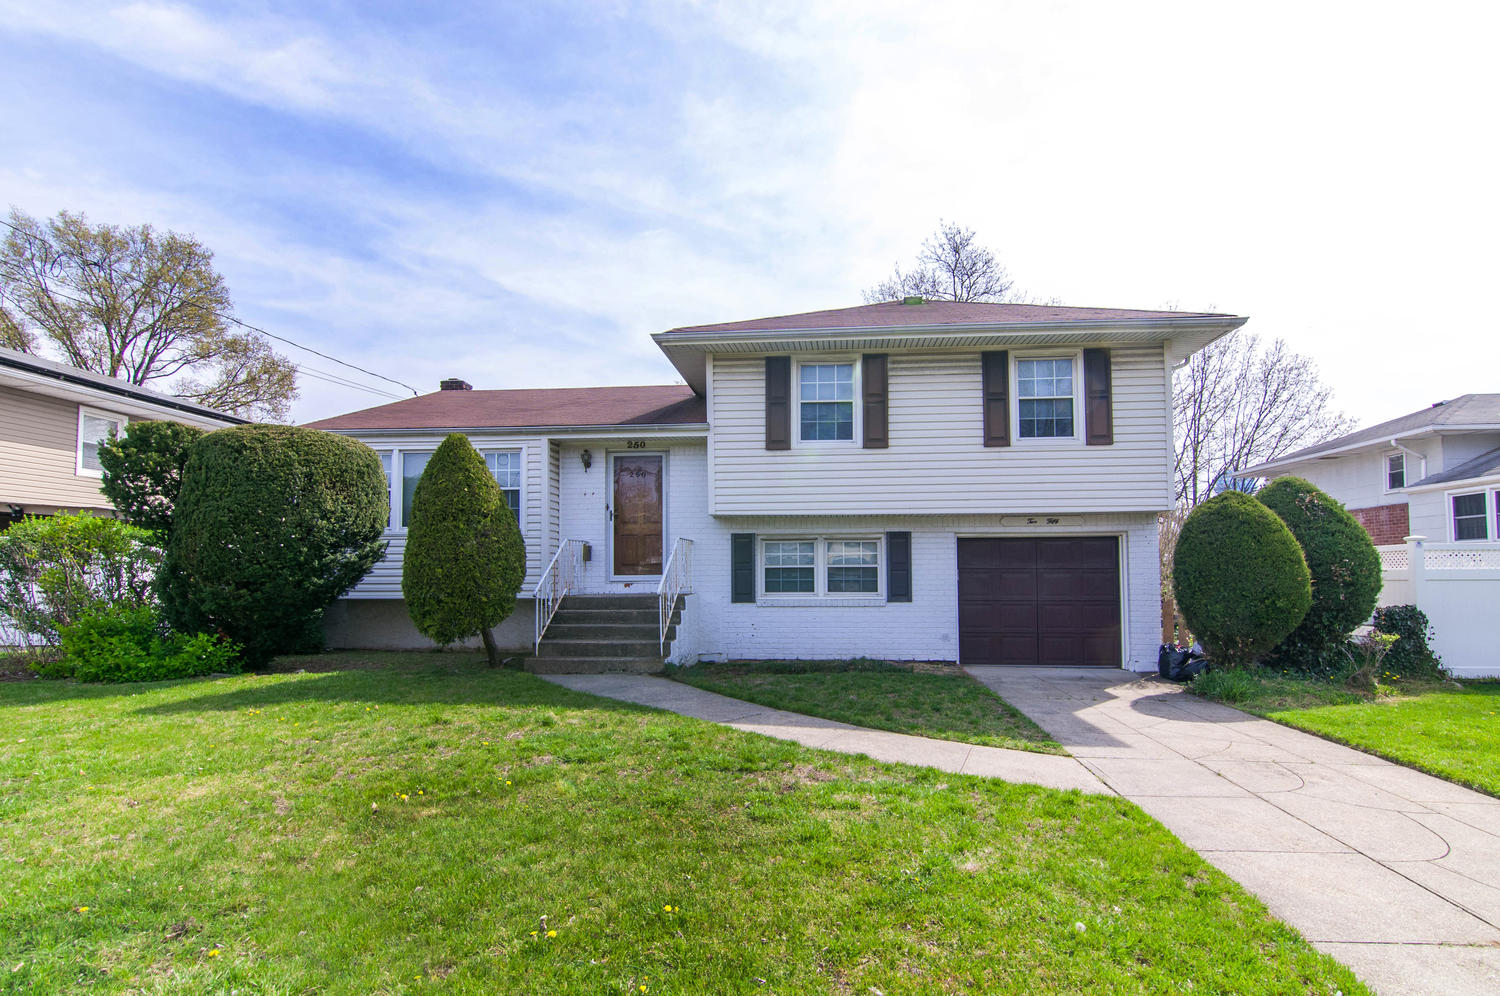 Single Family Home for Sale at Split Ranch 250 New Hyde Park Rd Franklin Square, New York, 11010 United States